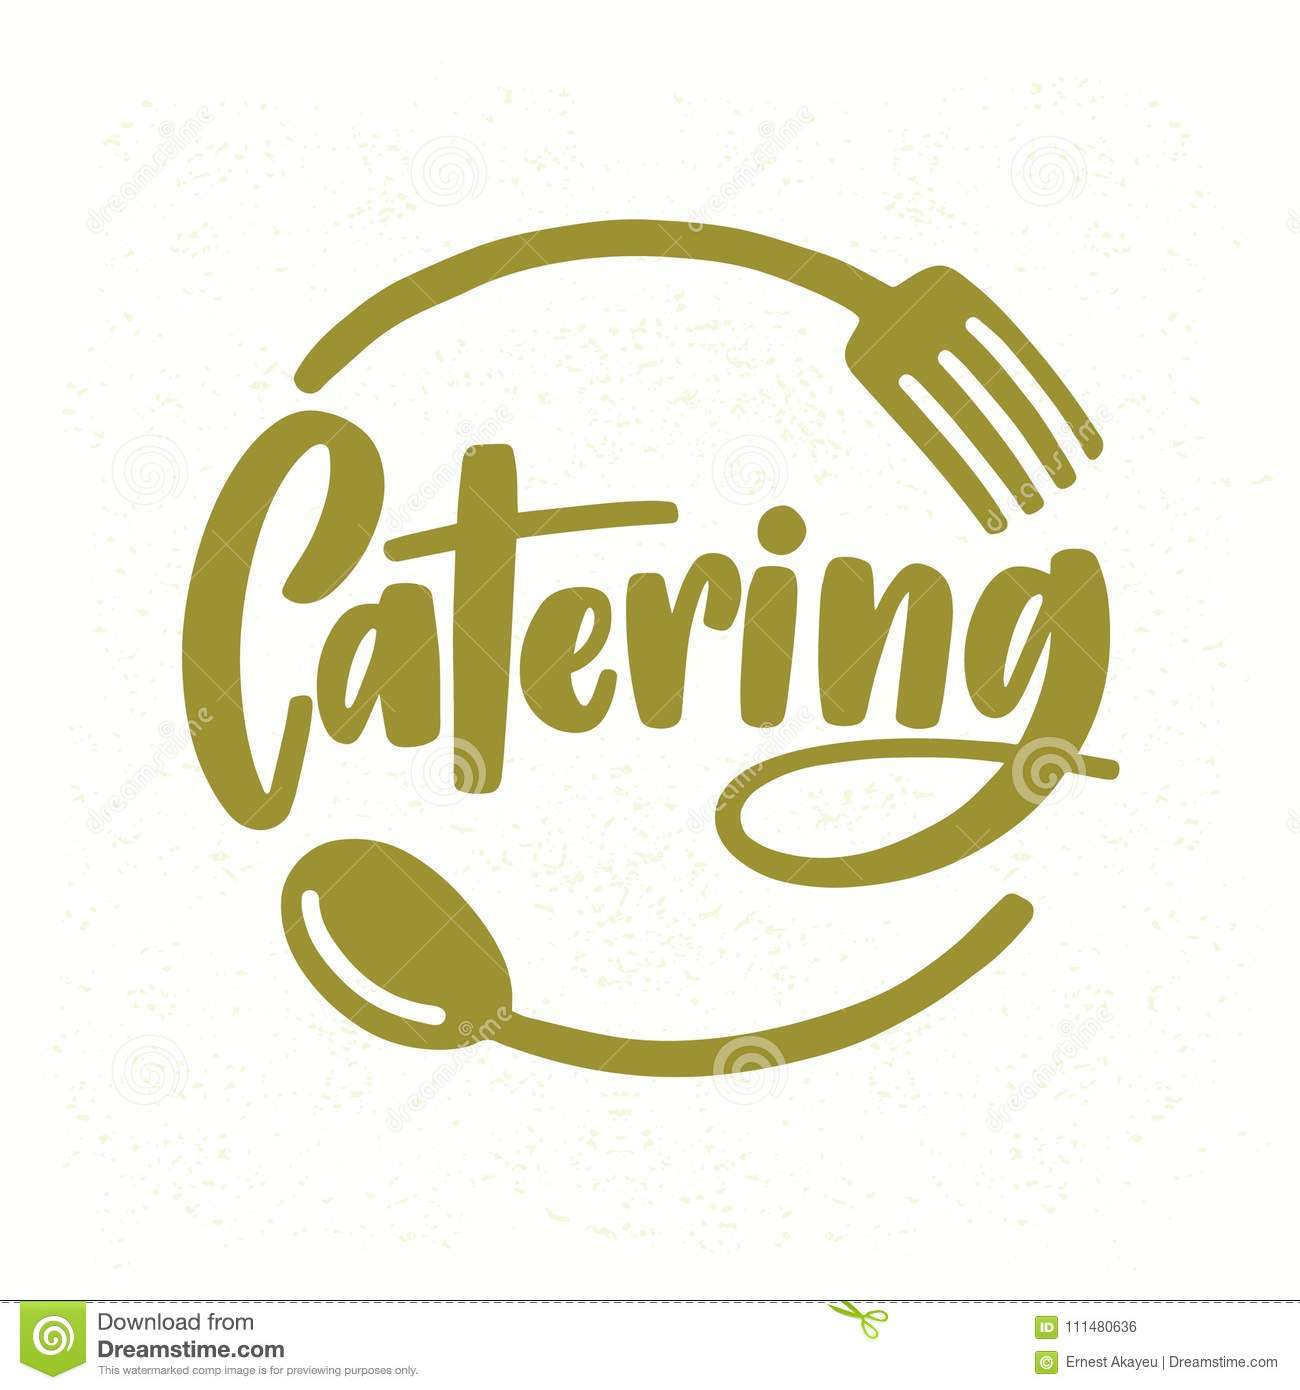 Download Catering Company Logo With Elegant Lettering Handwritten Cursive Font Decorated Fork And Spoon